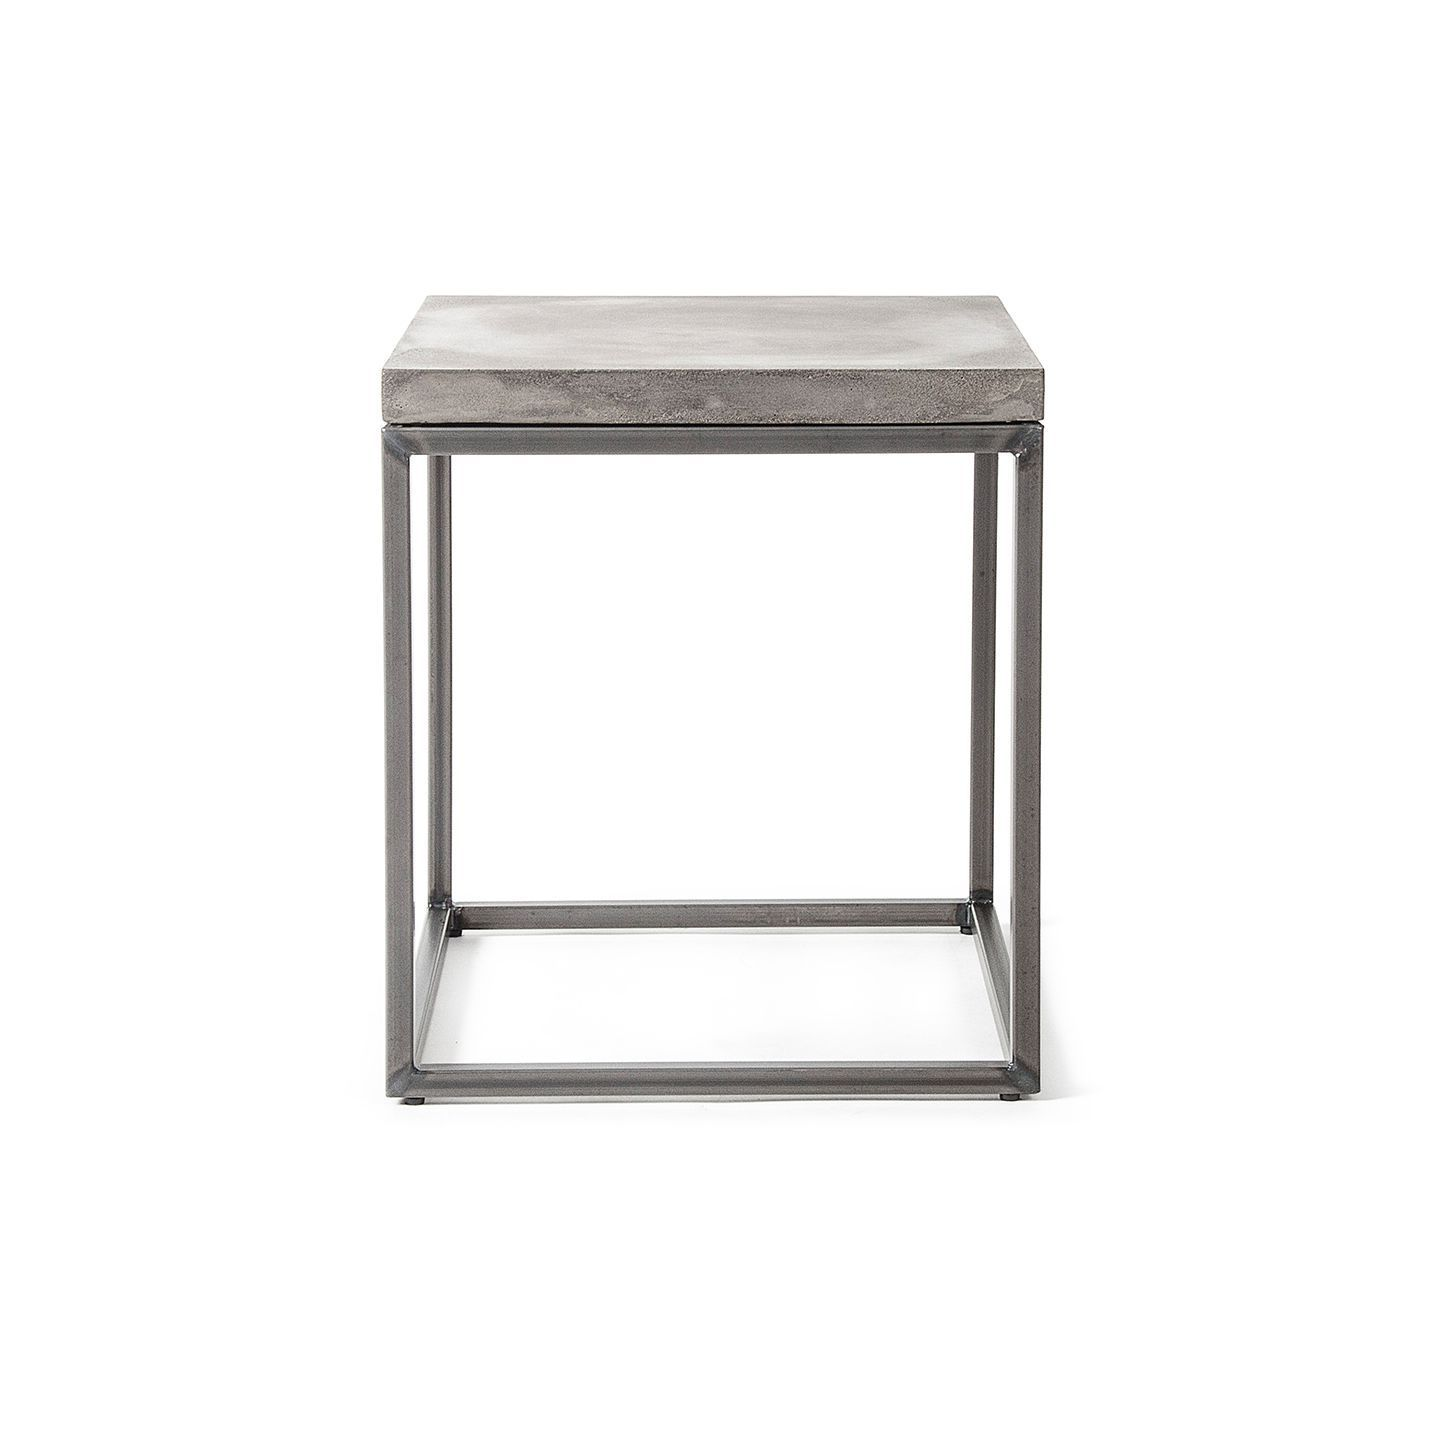 Contemporary side table / metal / concrete / square - PERSPECTIVE ...